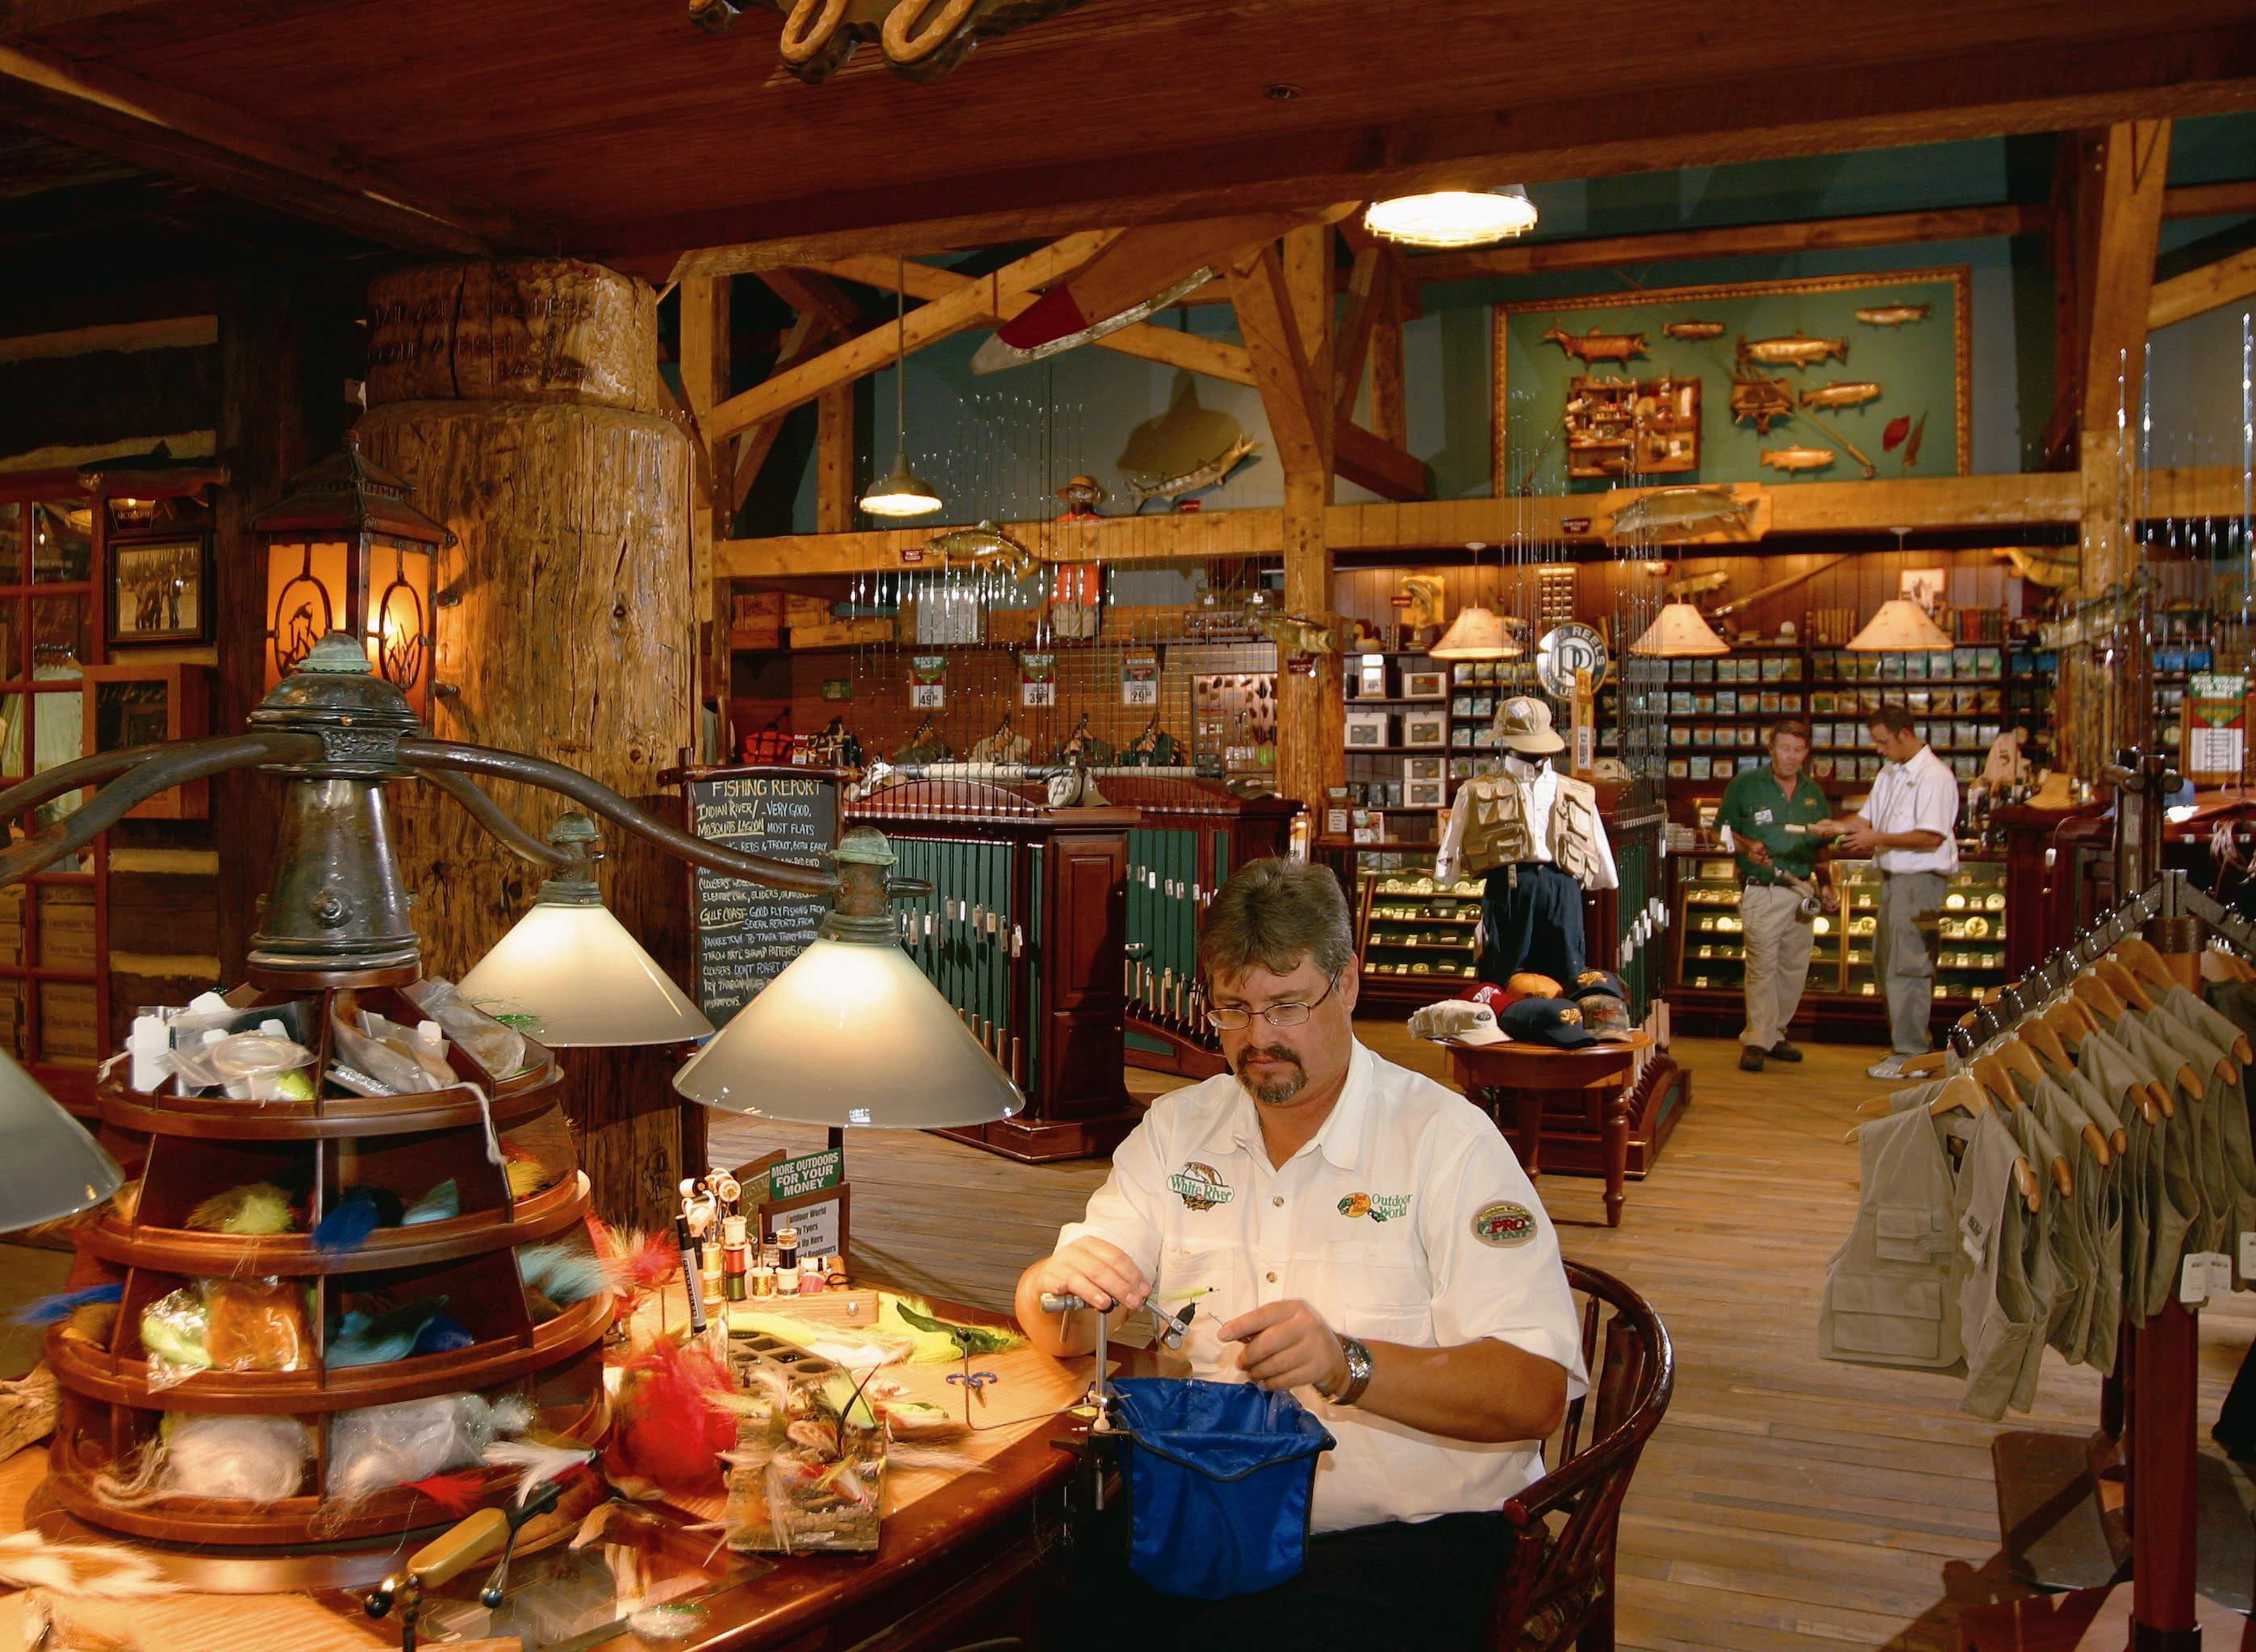 Bass pro shops outdoor world opens august 20 in bristol for Fishing equipment stores